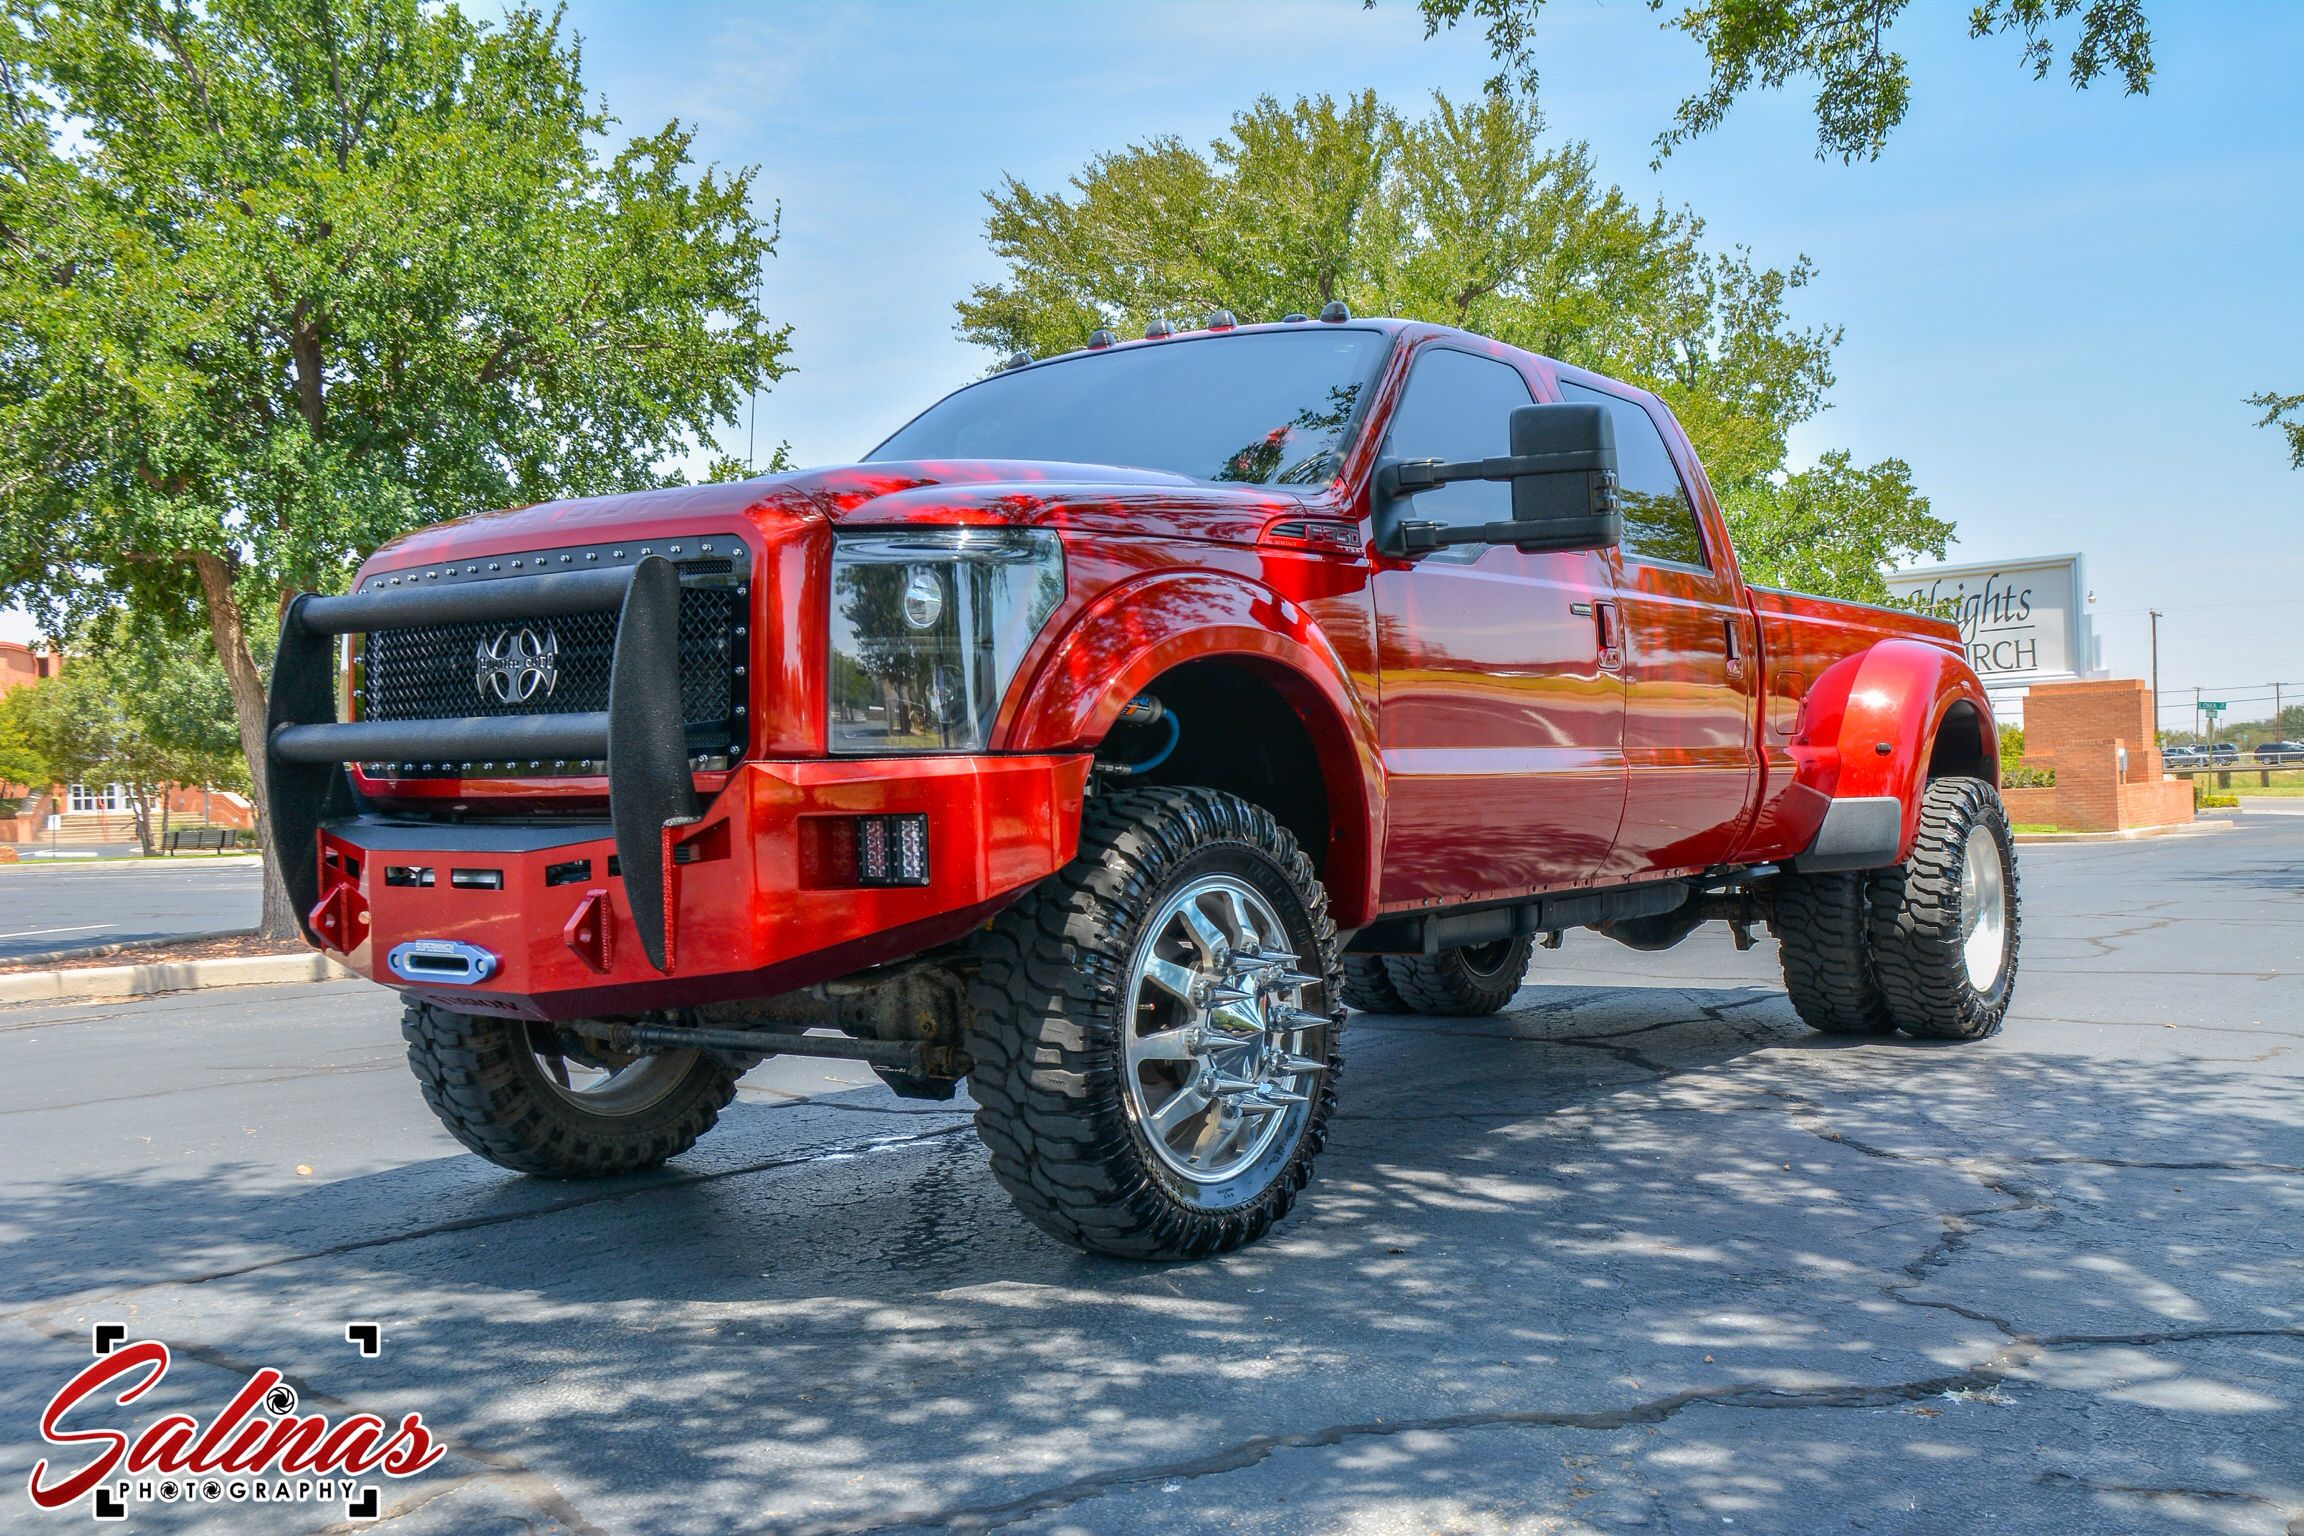 B F B Bc B F A D F additionally Ford F Super Duty Lariat Platinum Dash as well Amsc further Hqdefault additionally B D Fd F C Fbba E Ad Truck Accesories Roof Rack. on 86 f350 4x4